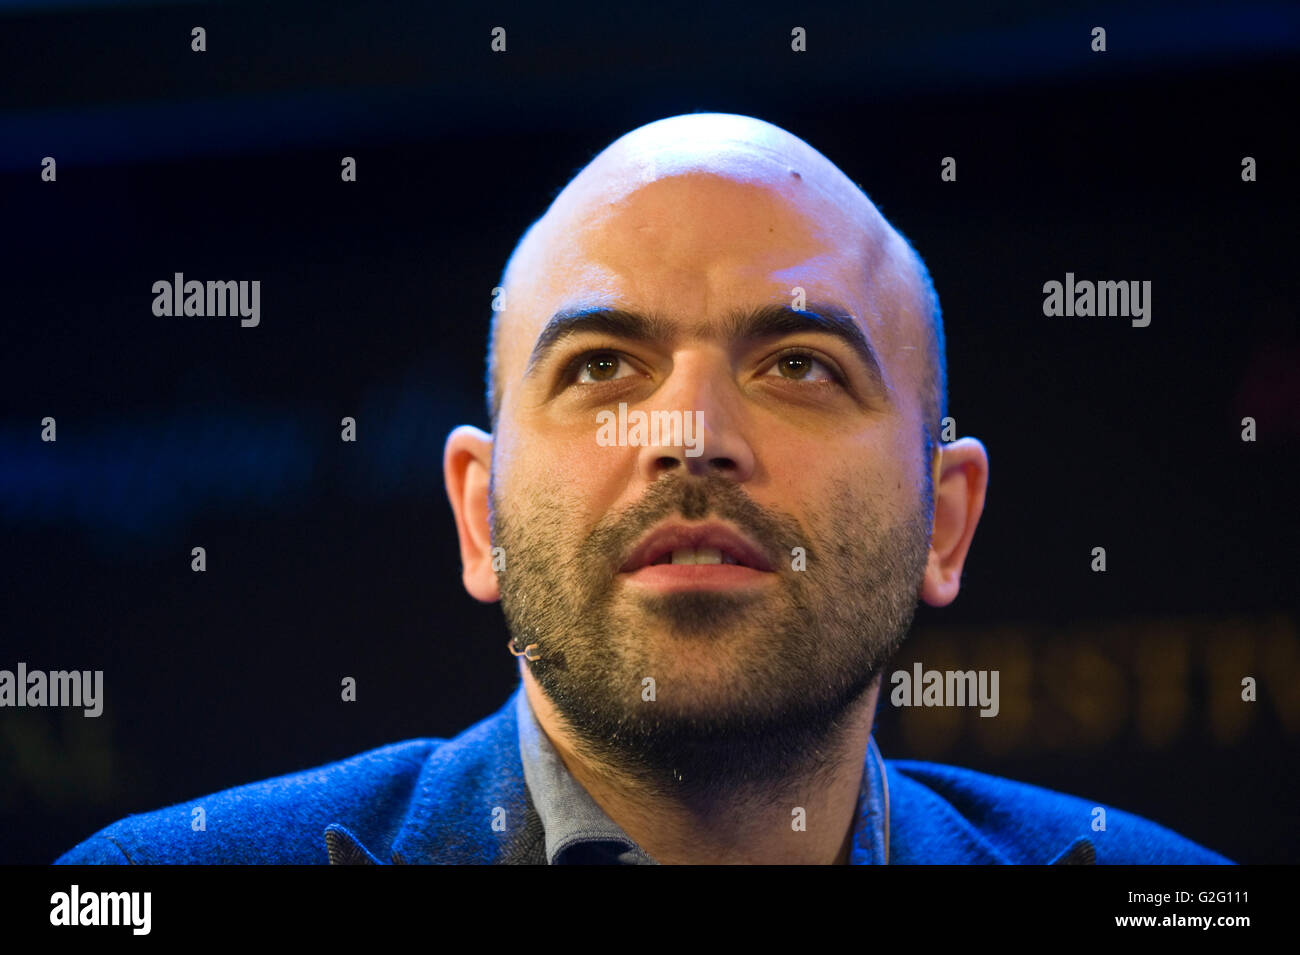 Roberto Saviano investigative journalist & author who exposed organized crime in Italy speaking on stage at - Stock Image